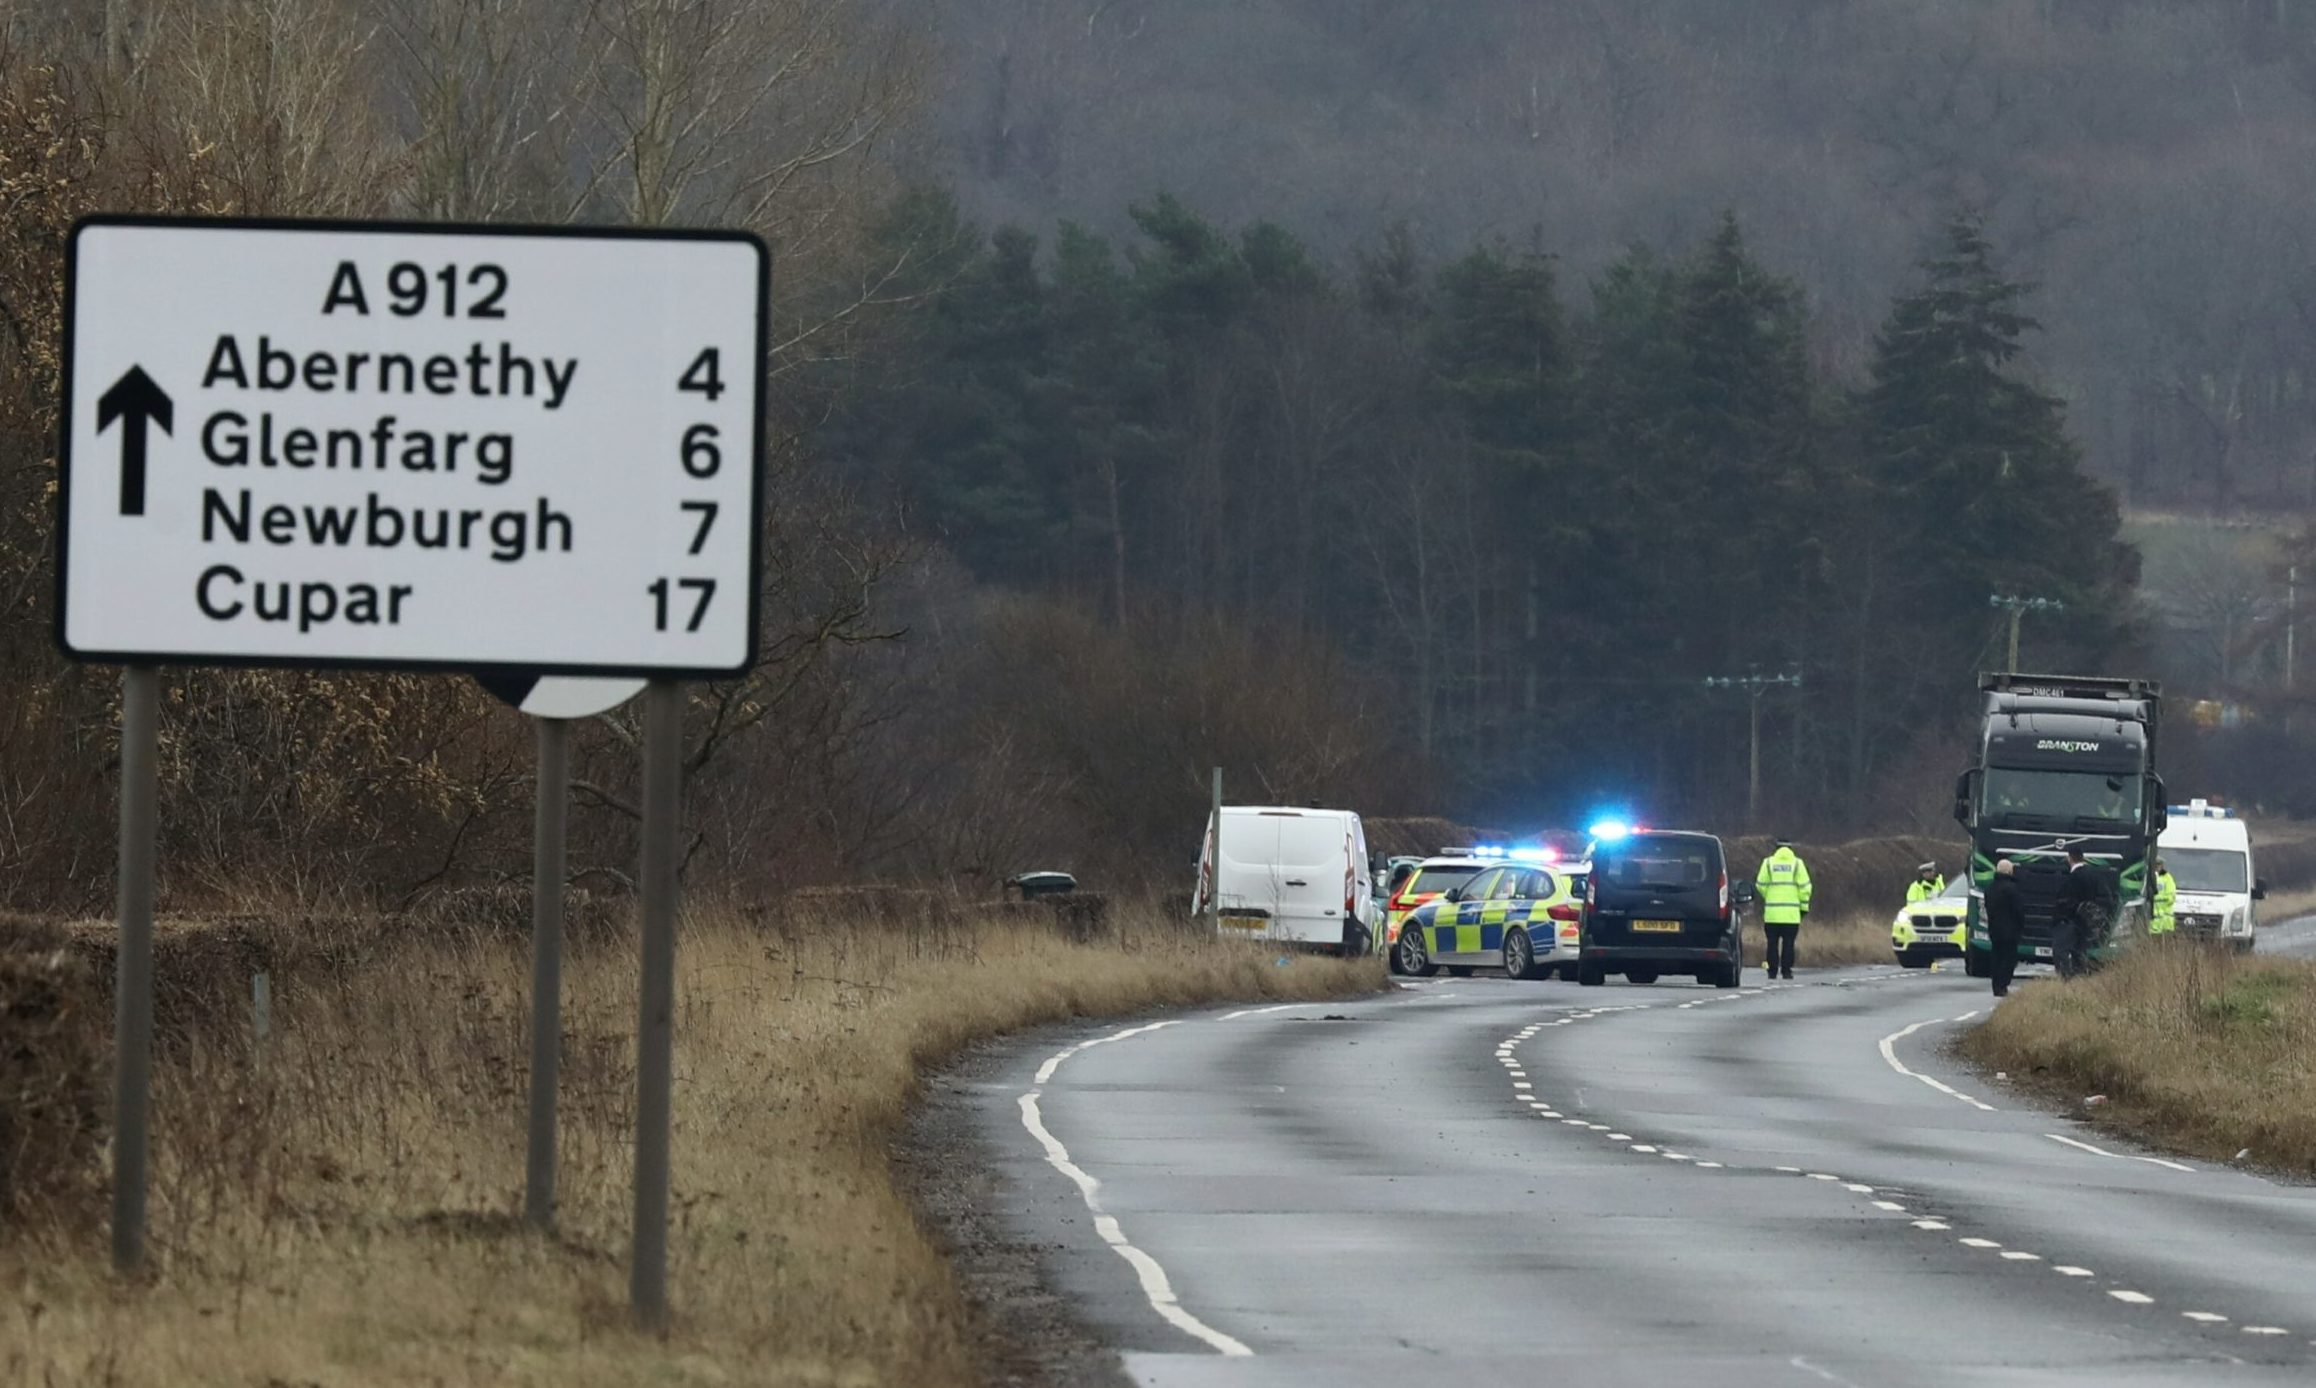 The accident on the A912.